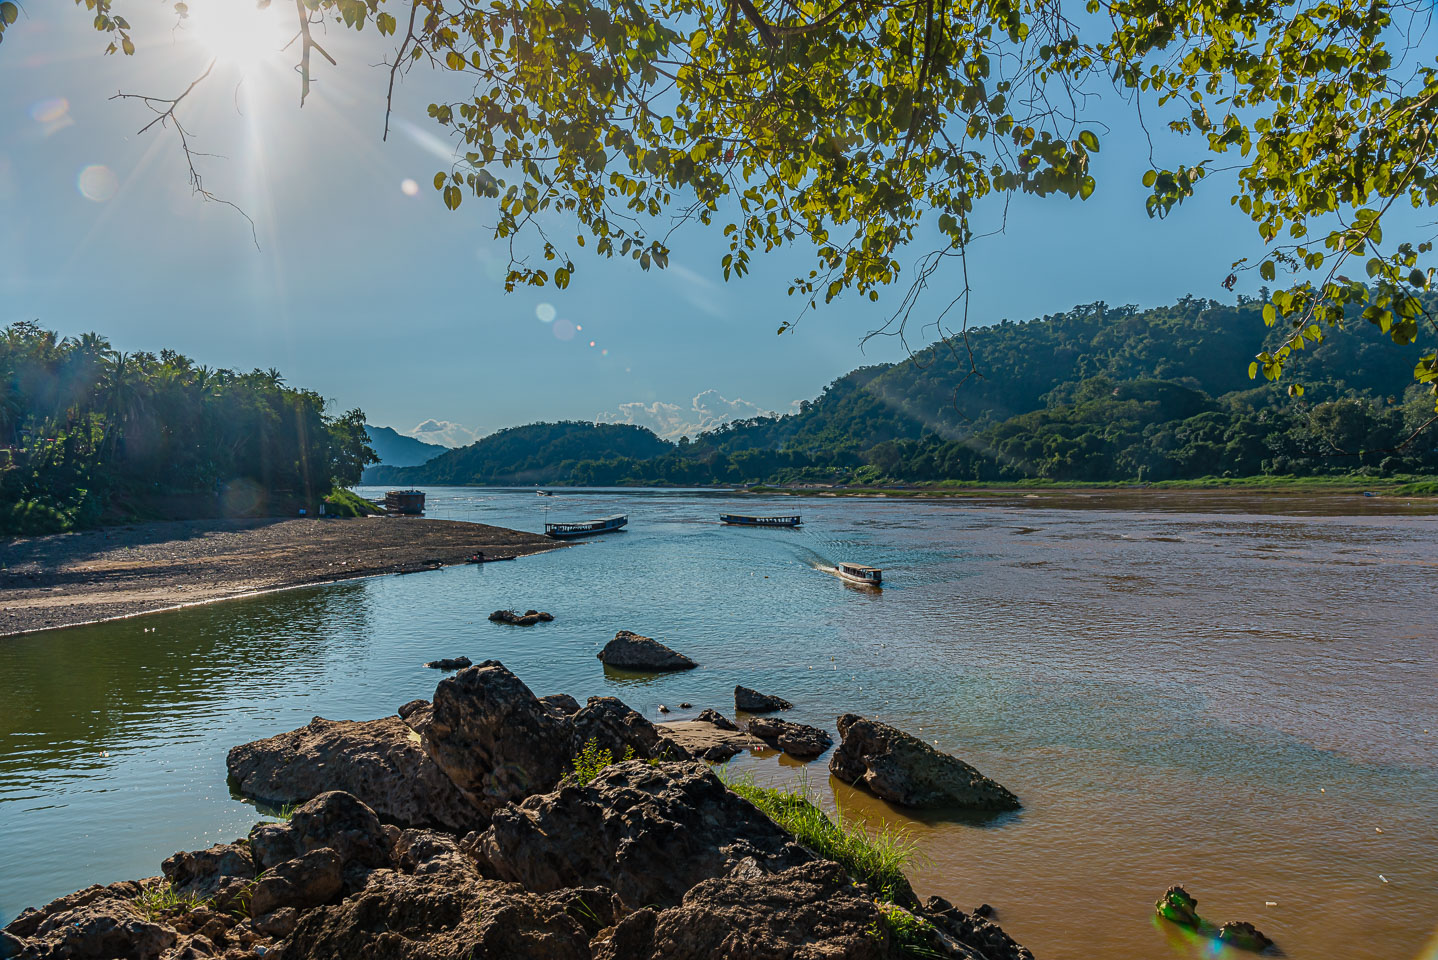 LA-162488-Confluence-of-the-Nam-Ou-and-the-Mekong.jpg